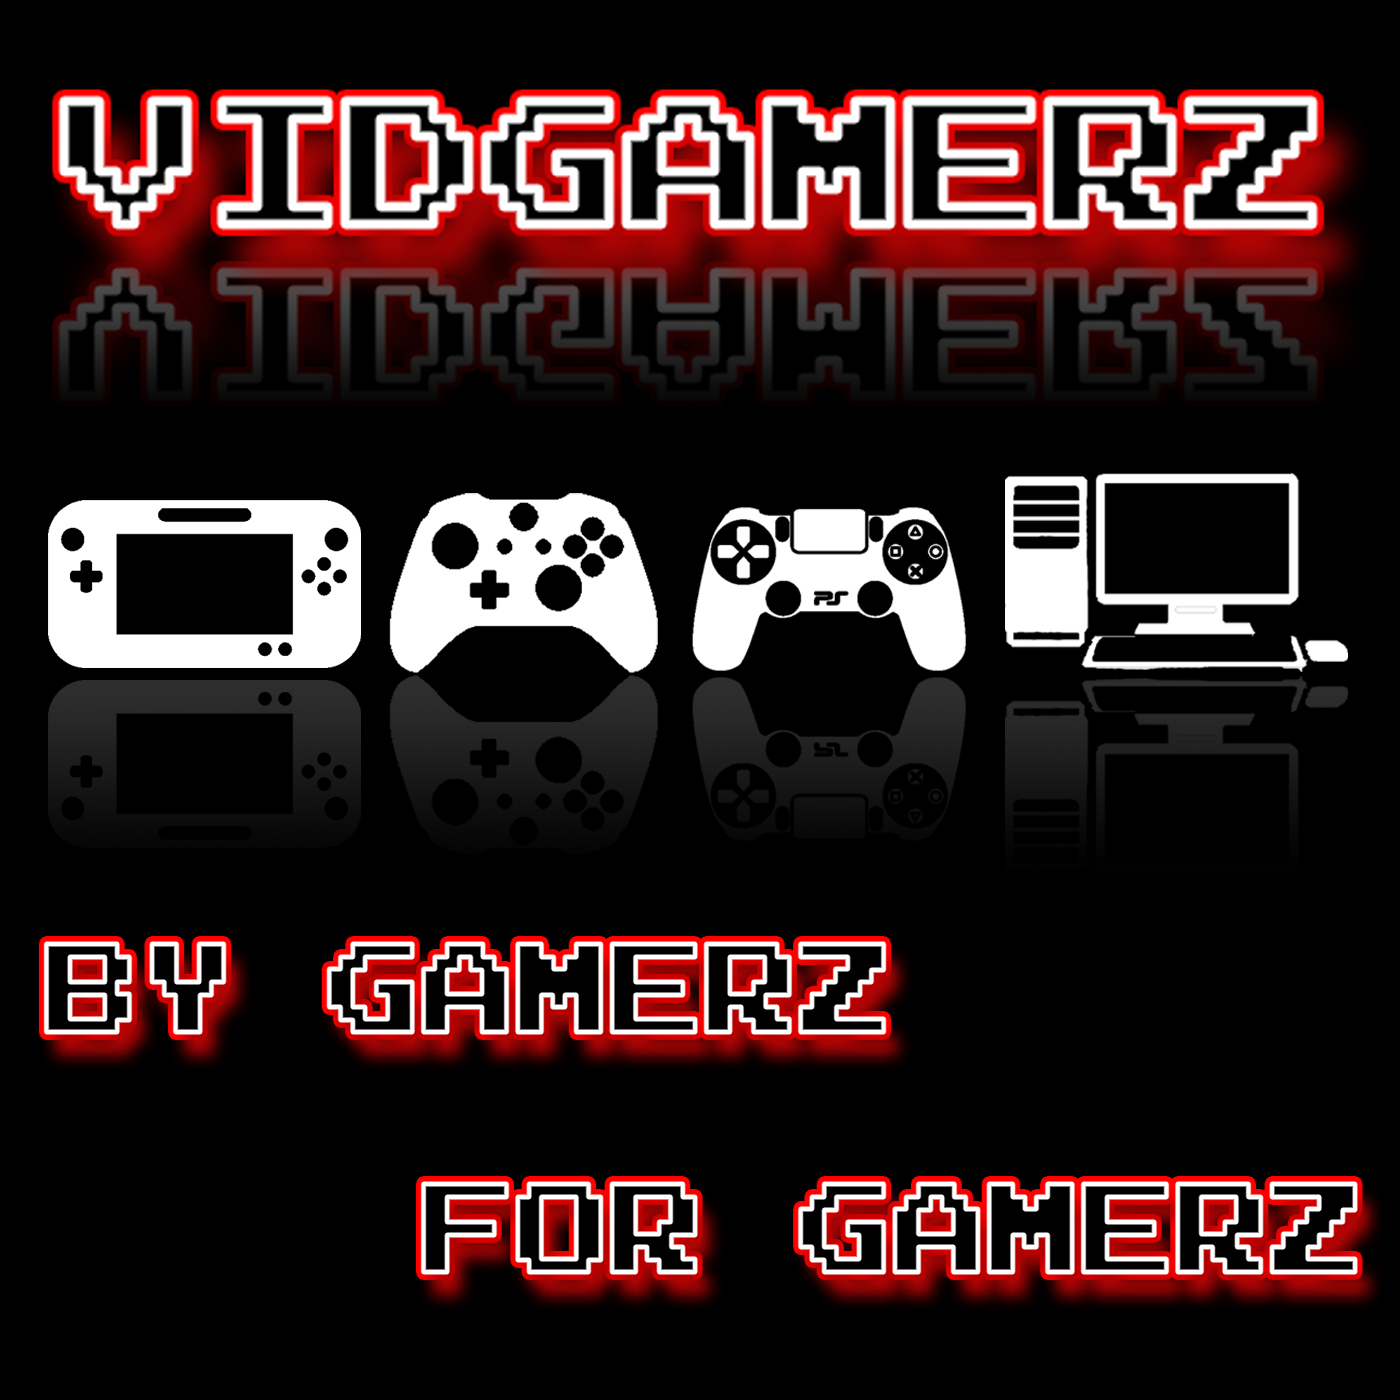 VidGamerz Podcastz